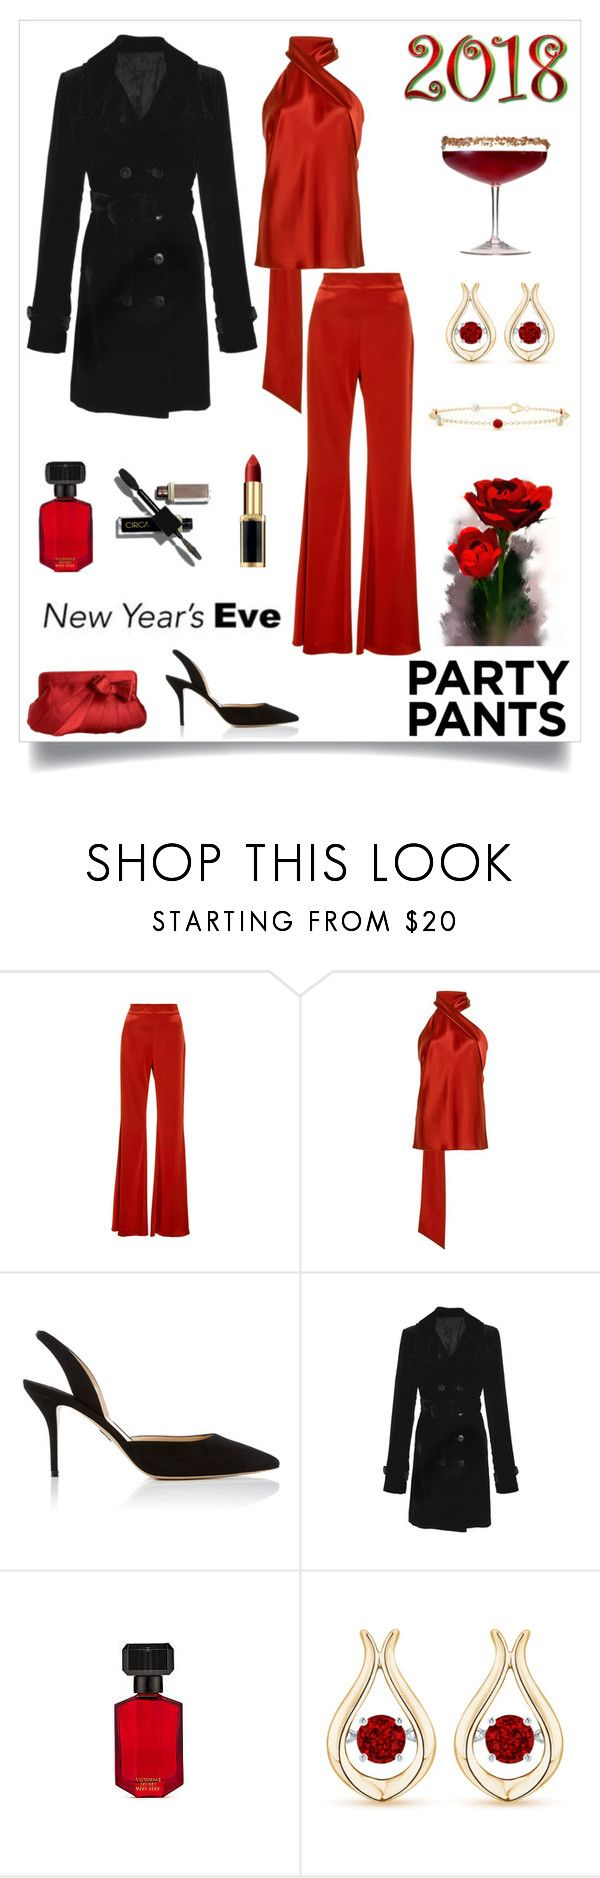 """""""New Years Eve Party Pants"""" by rboowybe ❤ liked on Polyvore featuring Galvan, Paul Andrew, Nili Lotan, J.Reneé, Victoria's Secret and contestentry"""